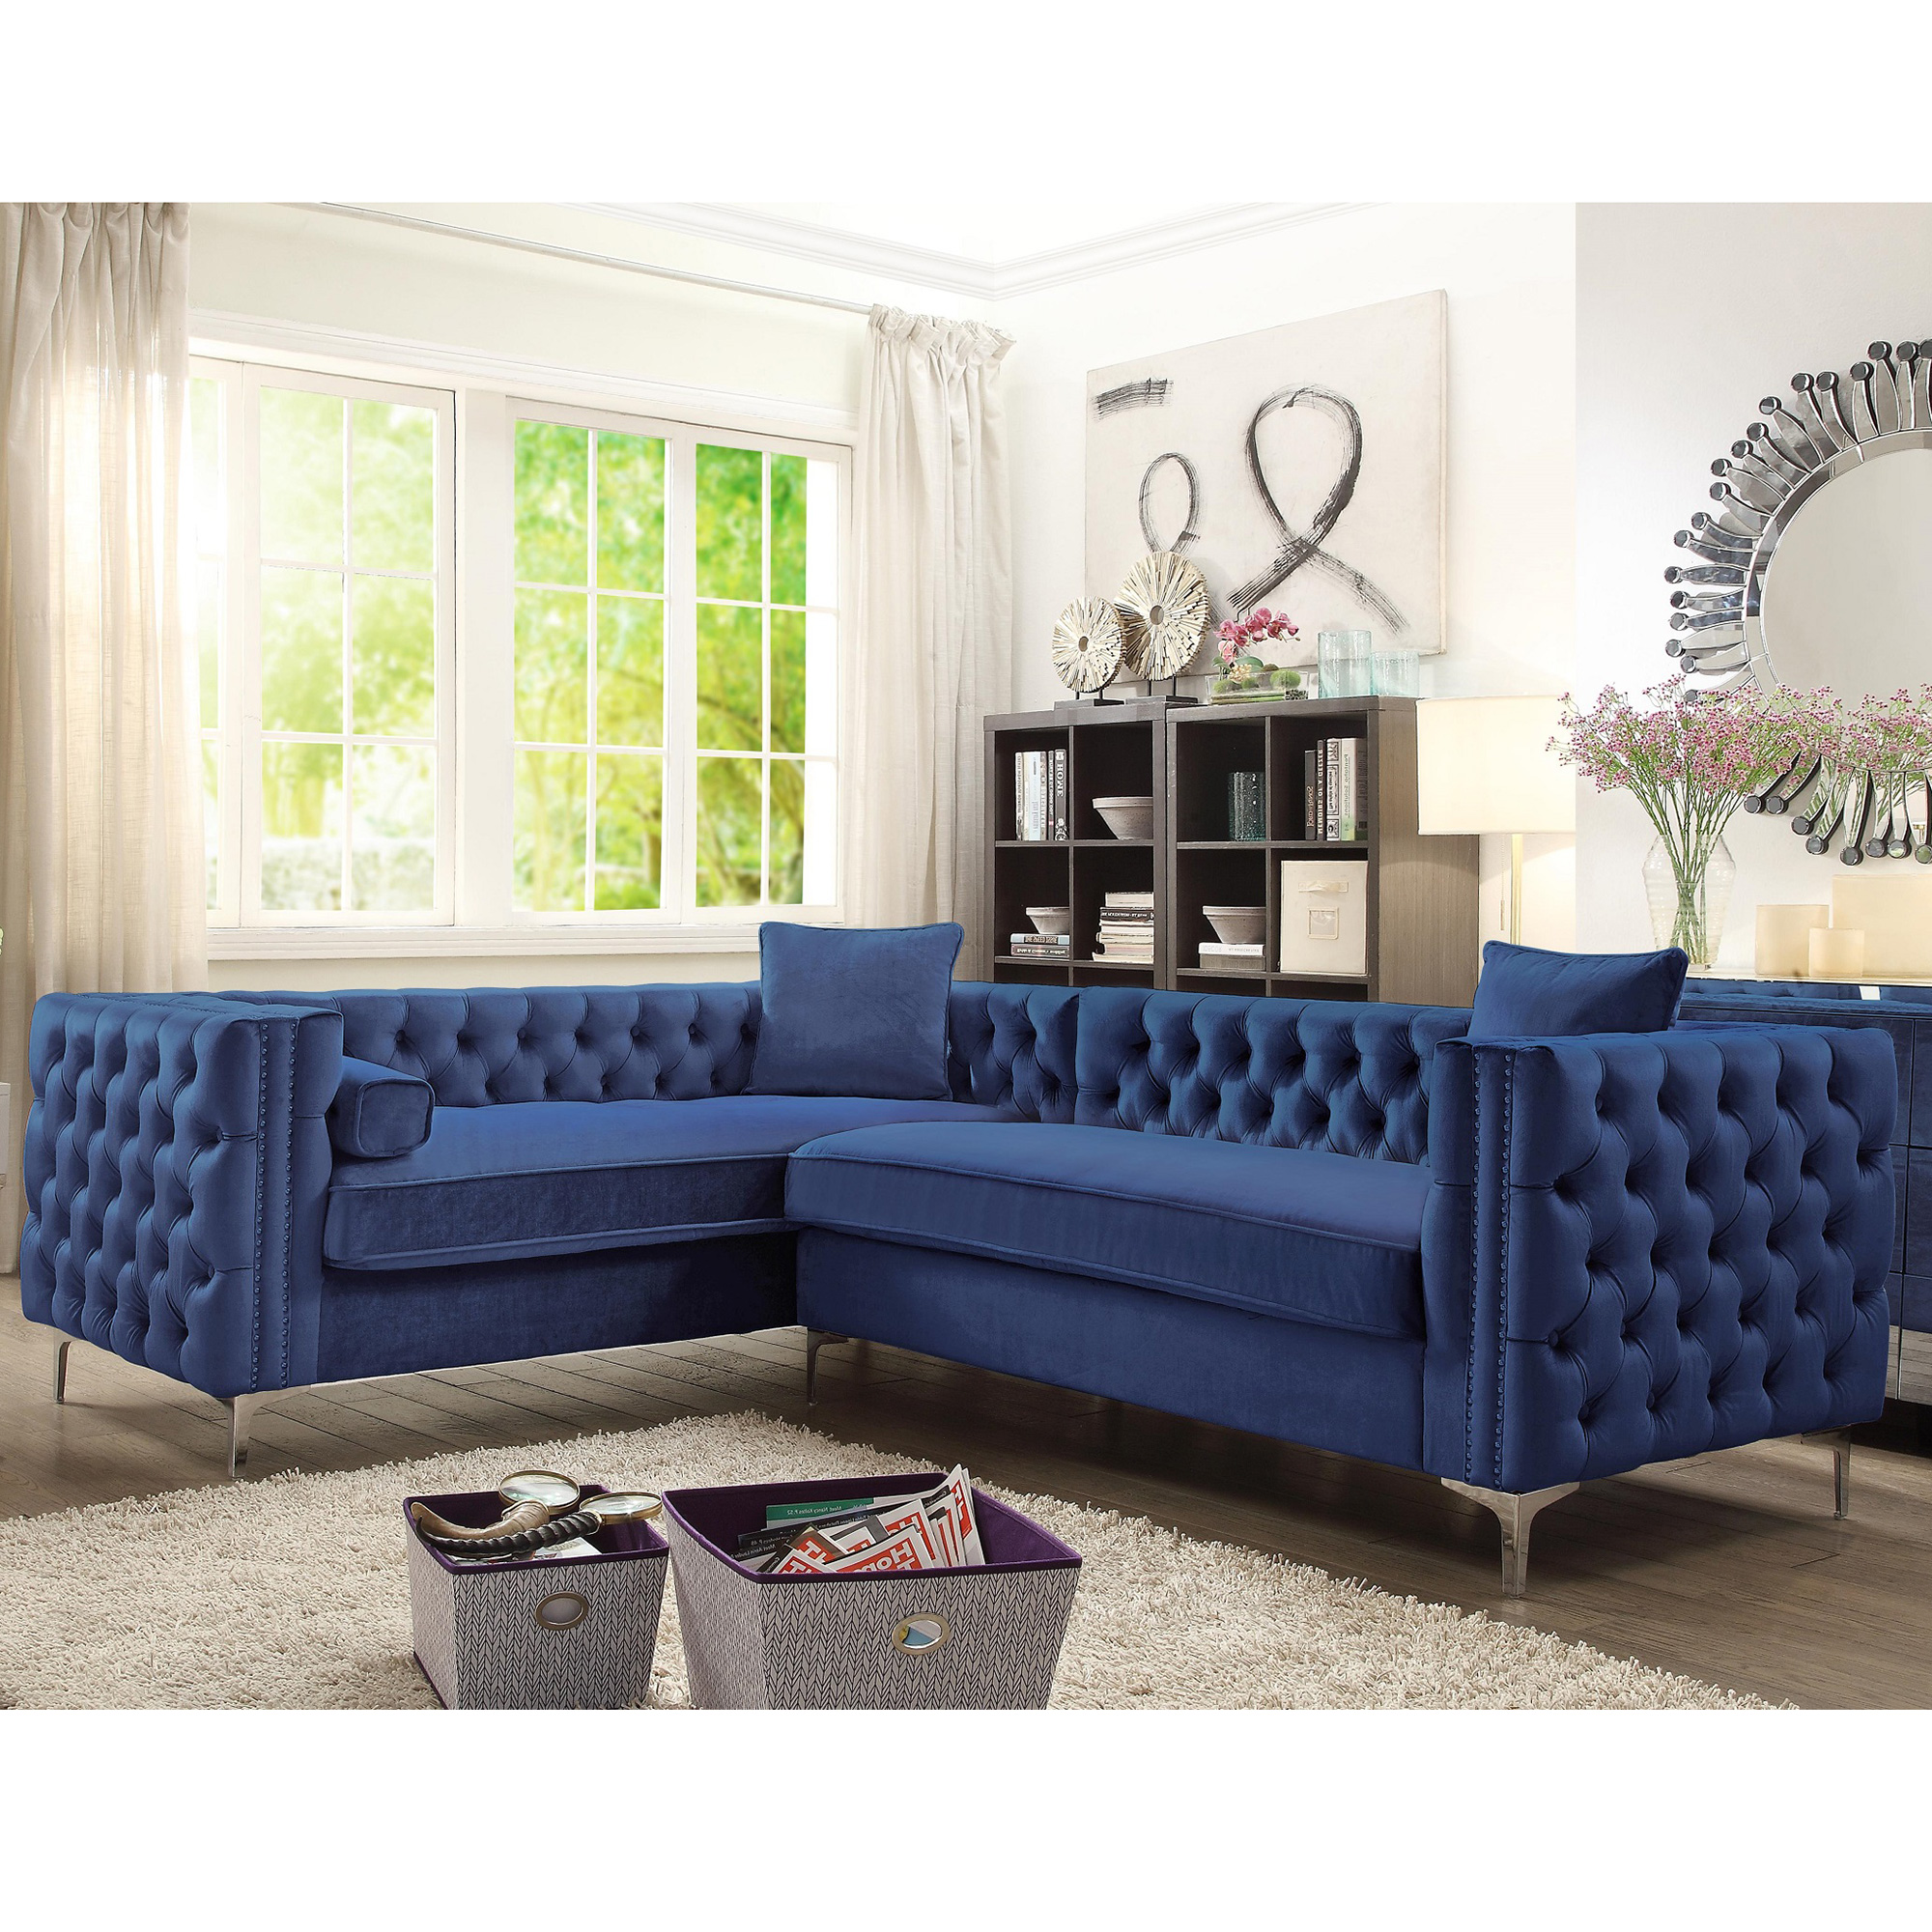 Miraculous Mozart Left Sectional Sofa W Right Hand Chaise In Tufted Navy Velvet By Chic Home Gamerscity Chair Design For Home Gamerscityorg